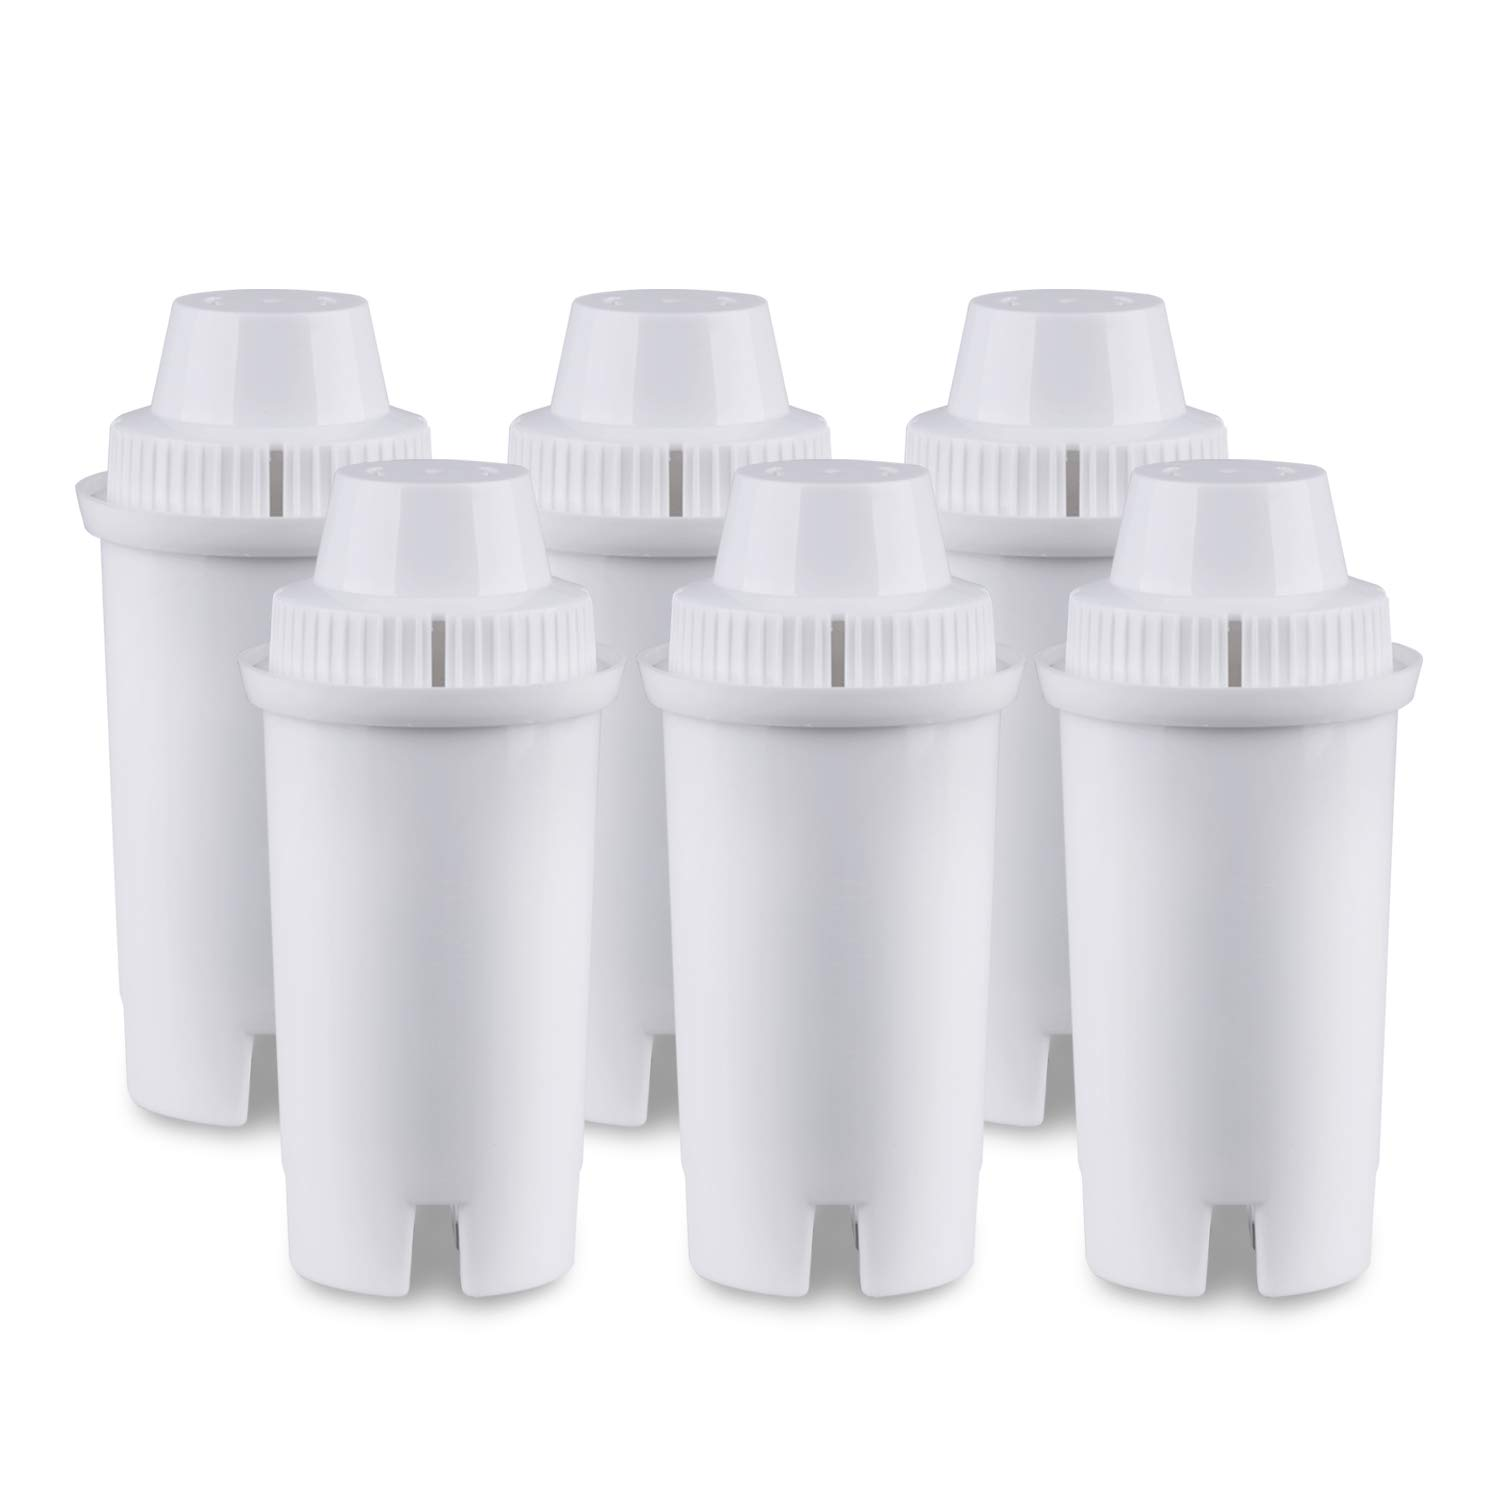 GOLDEN ICEPURE Replacement Pitcher Water Filter,Compatible with Brita Classic Filter,Advanced Filter,Mavea 107007,6 Pack